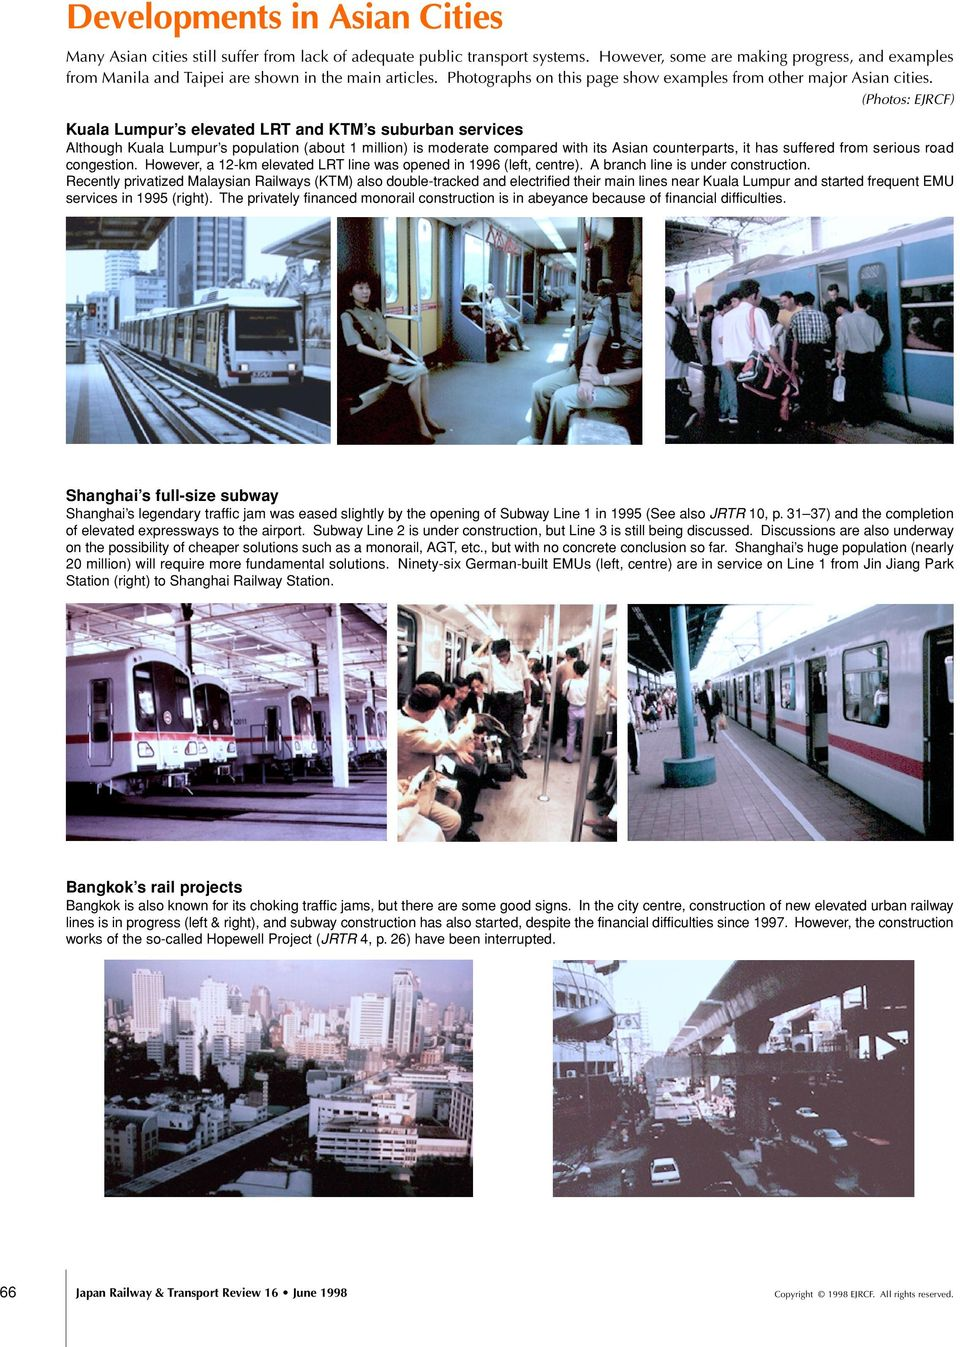 (Photos: EJRCF) Kuala Lumpur s elevated LRT and KTM s suburban services Although Kuala Lumpur s population (about 1 million) is moderate compared with its Asian counterparts, it has suffered from